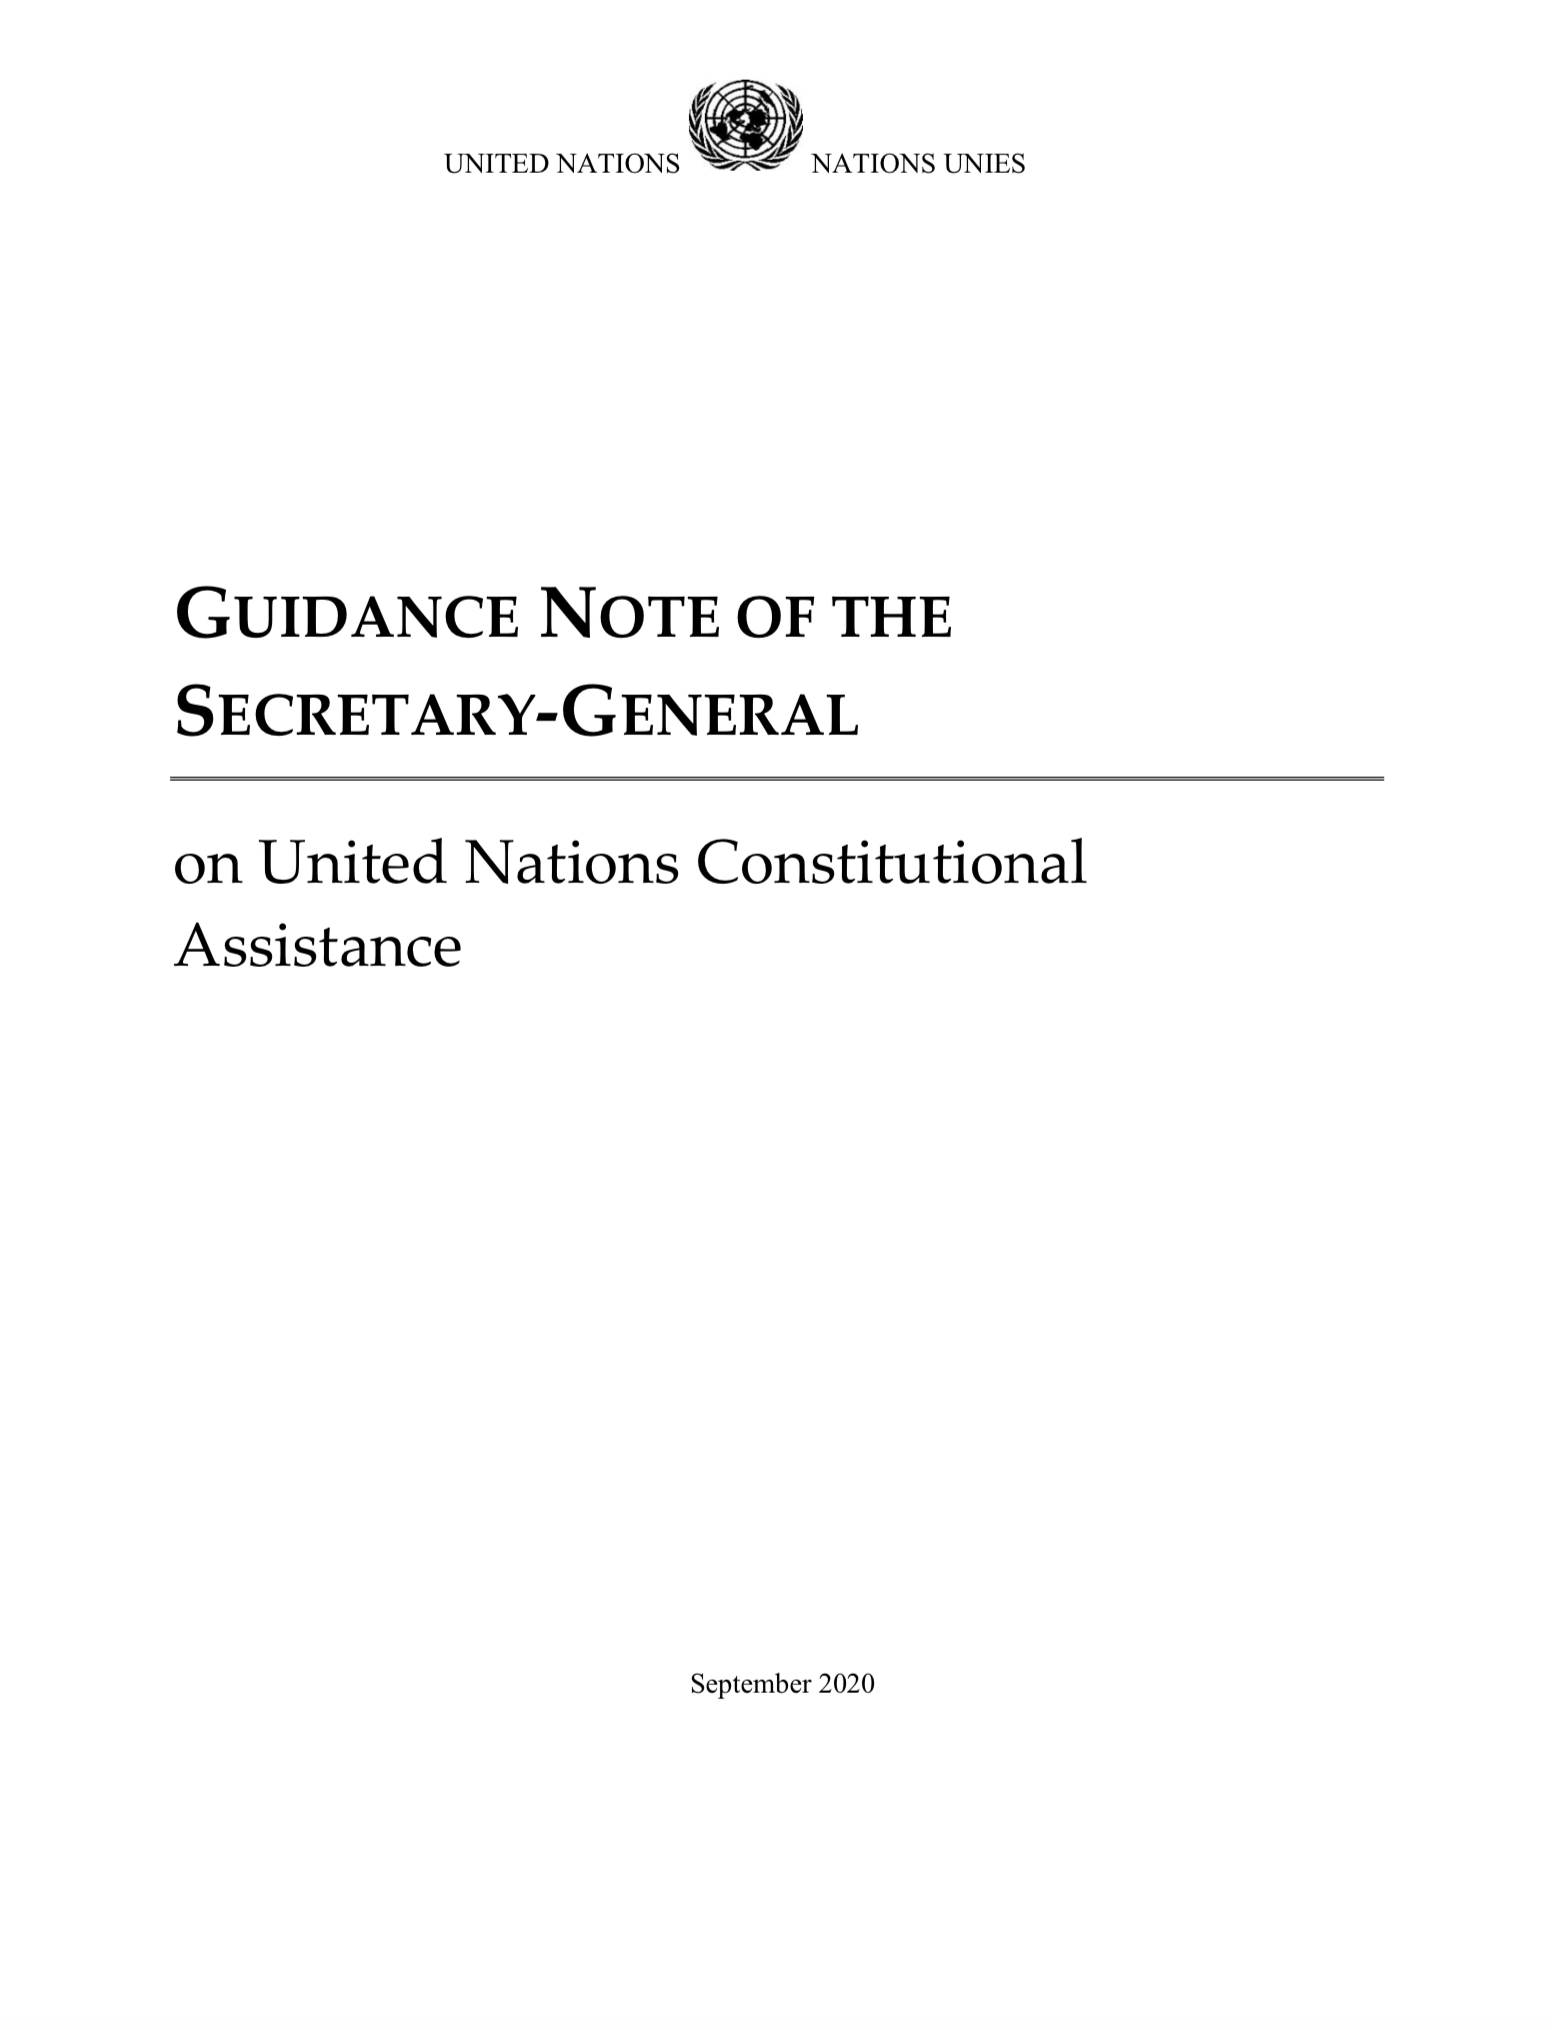 Guidance Note of the Secretary-General on United Nations Constitutional Assistance